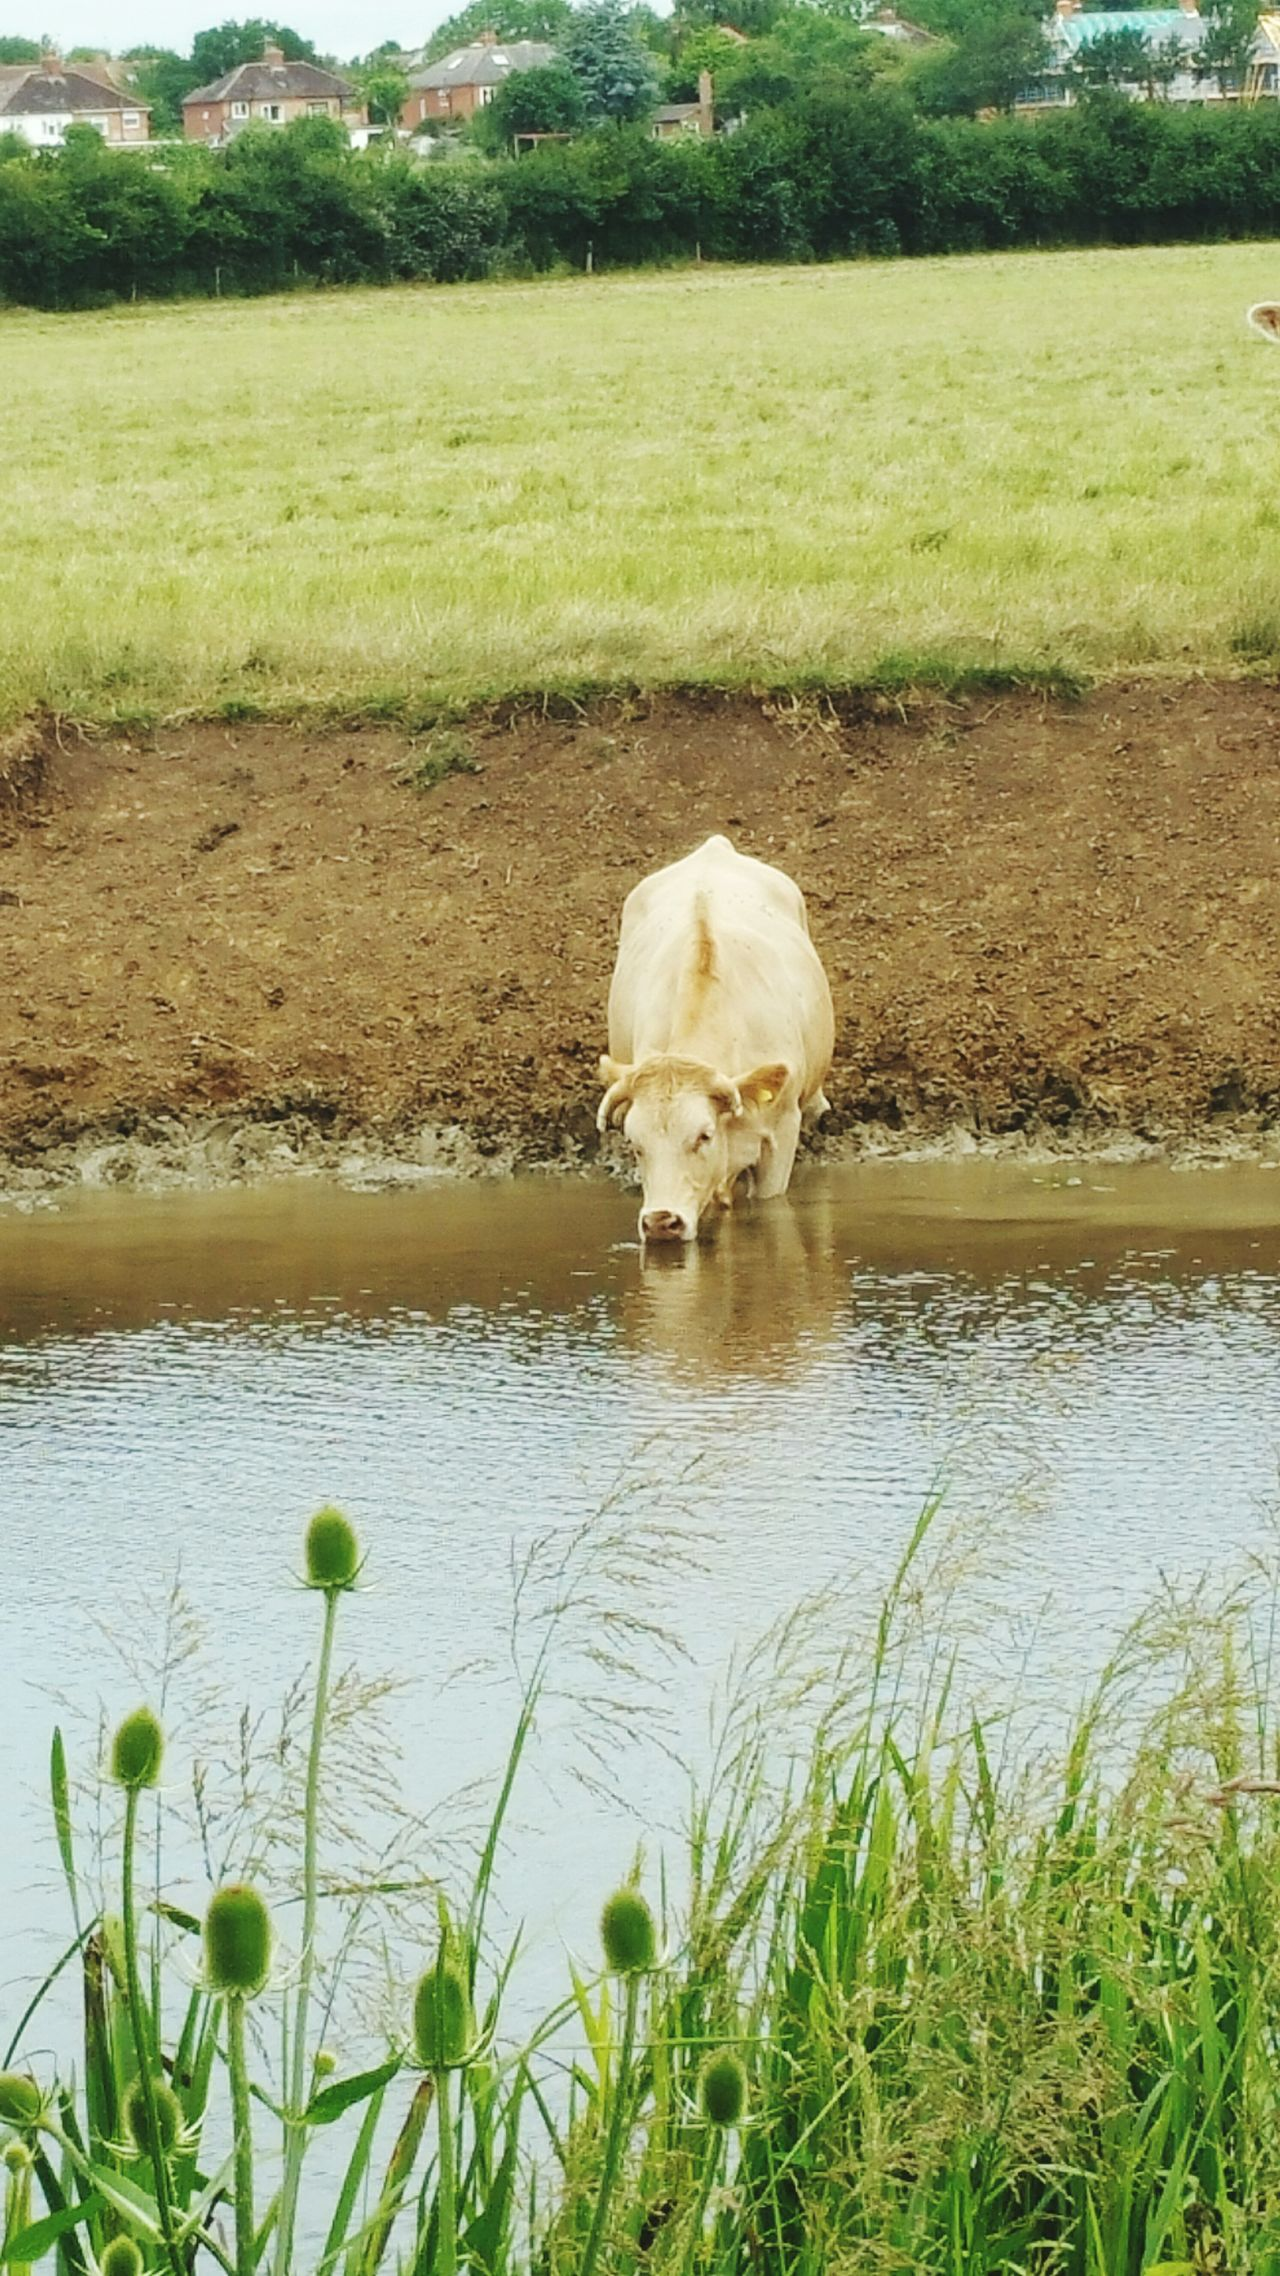 Cow Nature Nature_collection Nature Photography Bovine Drinking Water Lead A Cow To Water Stony Stratford